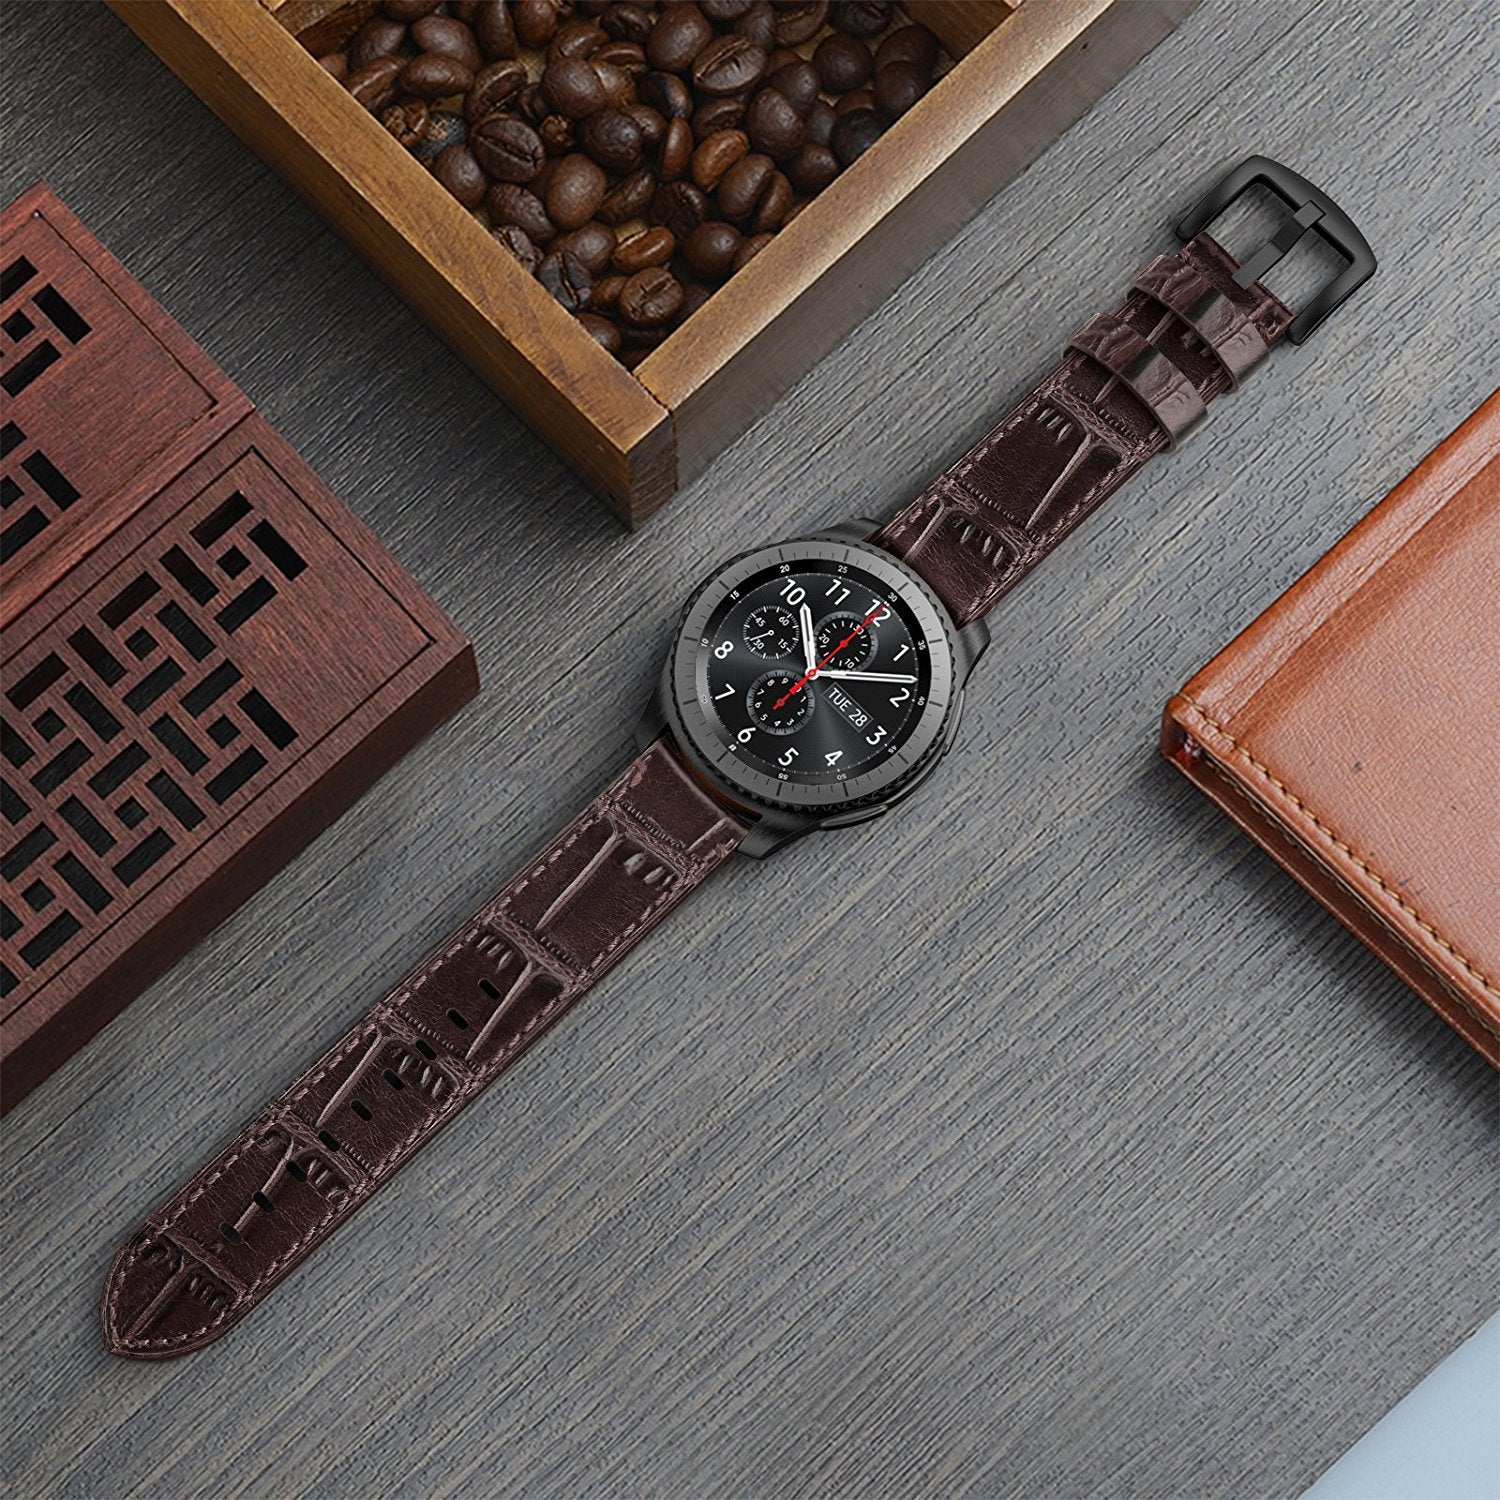 coffee watchbands men corgeut watch bands bracelet leather for product straps genuine